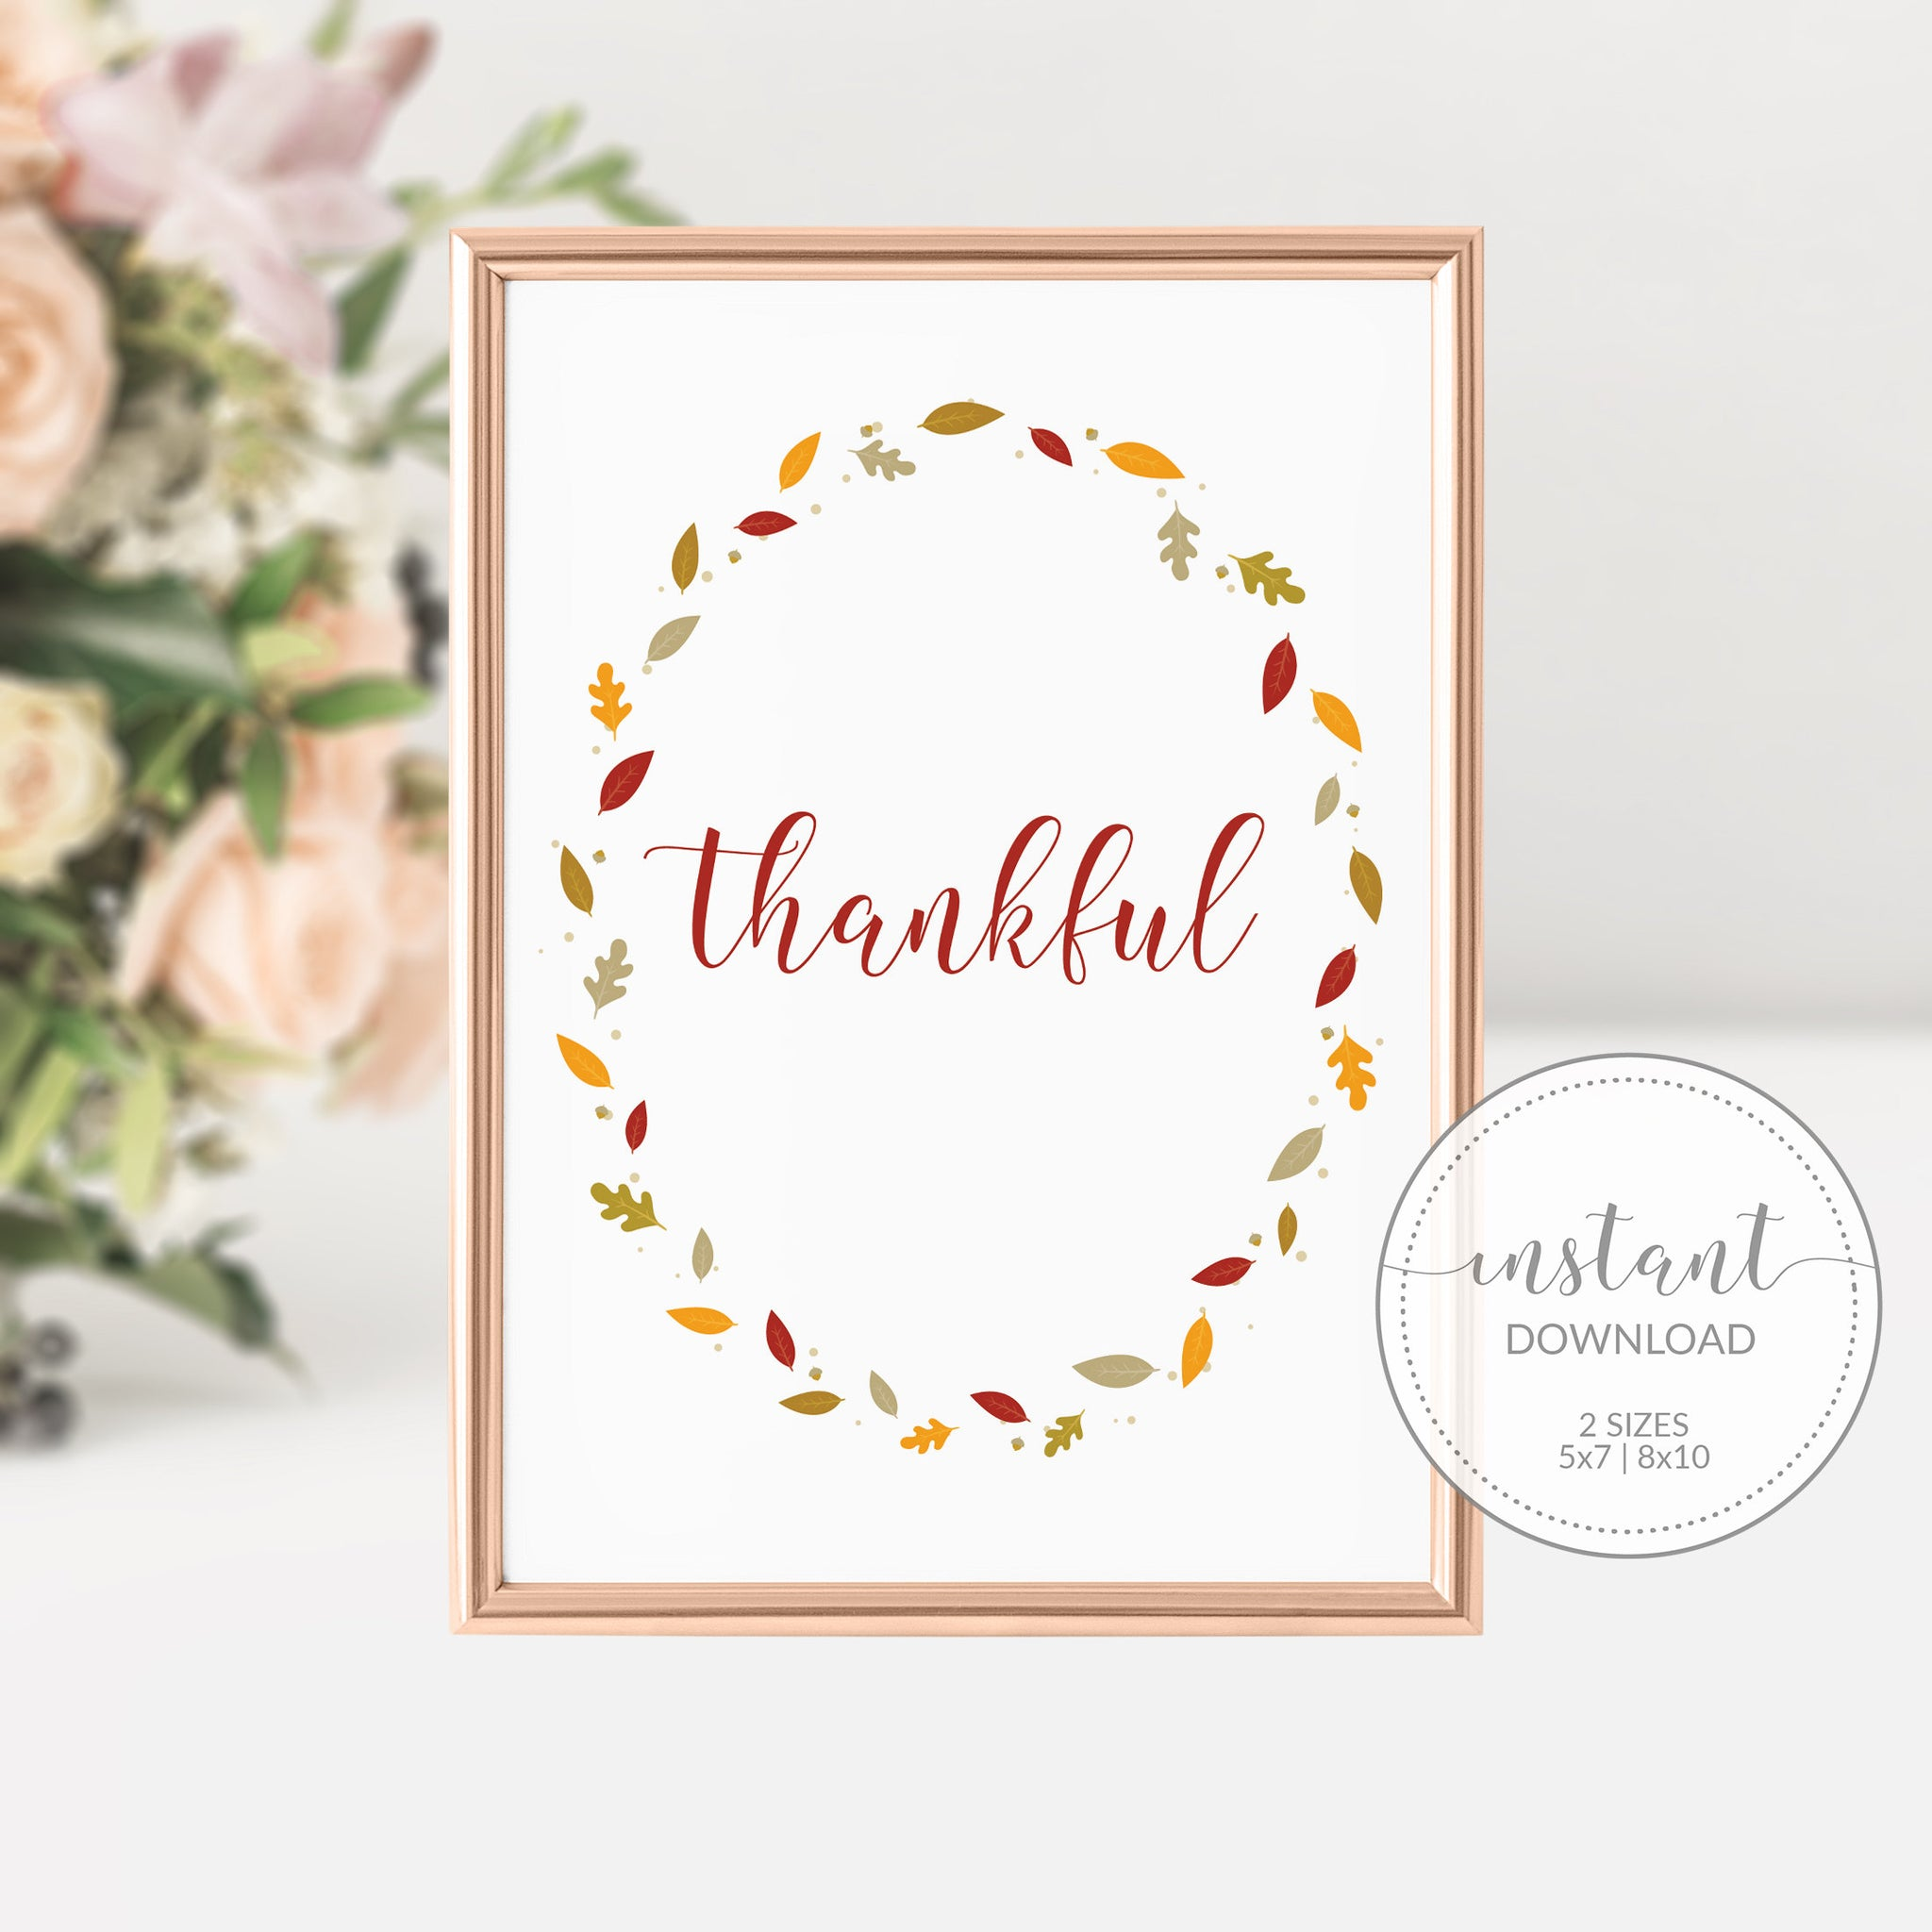 Thankful Sign Printable, Thanksgiving Decor, Thanksgiving Signs Printable, Front Entrance Decor, INSTANT DOWNLOAD - FL100